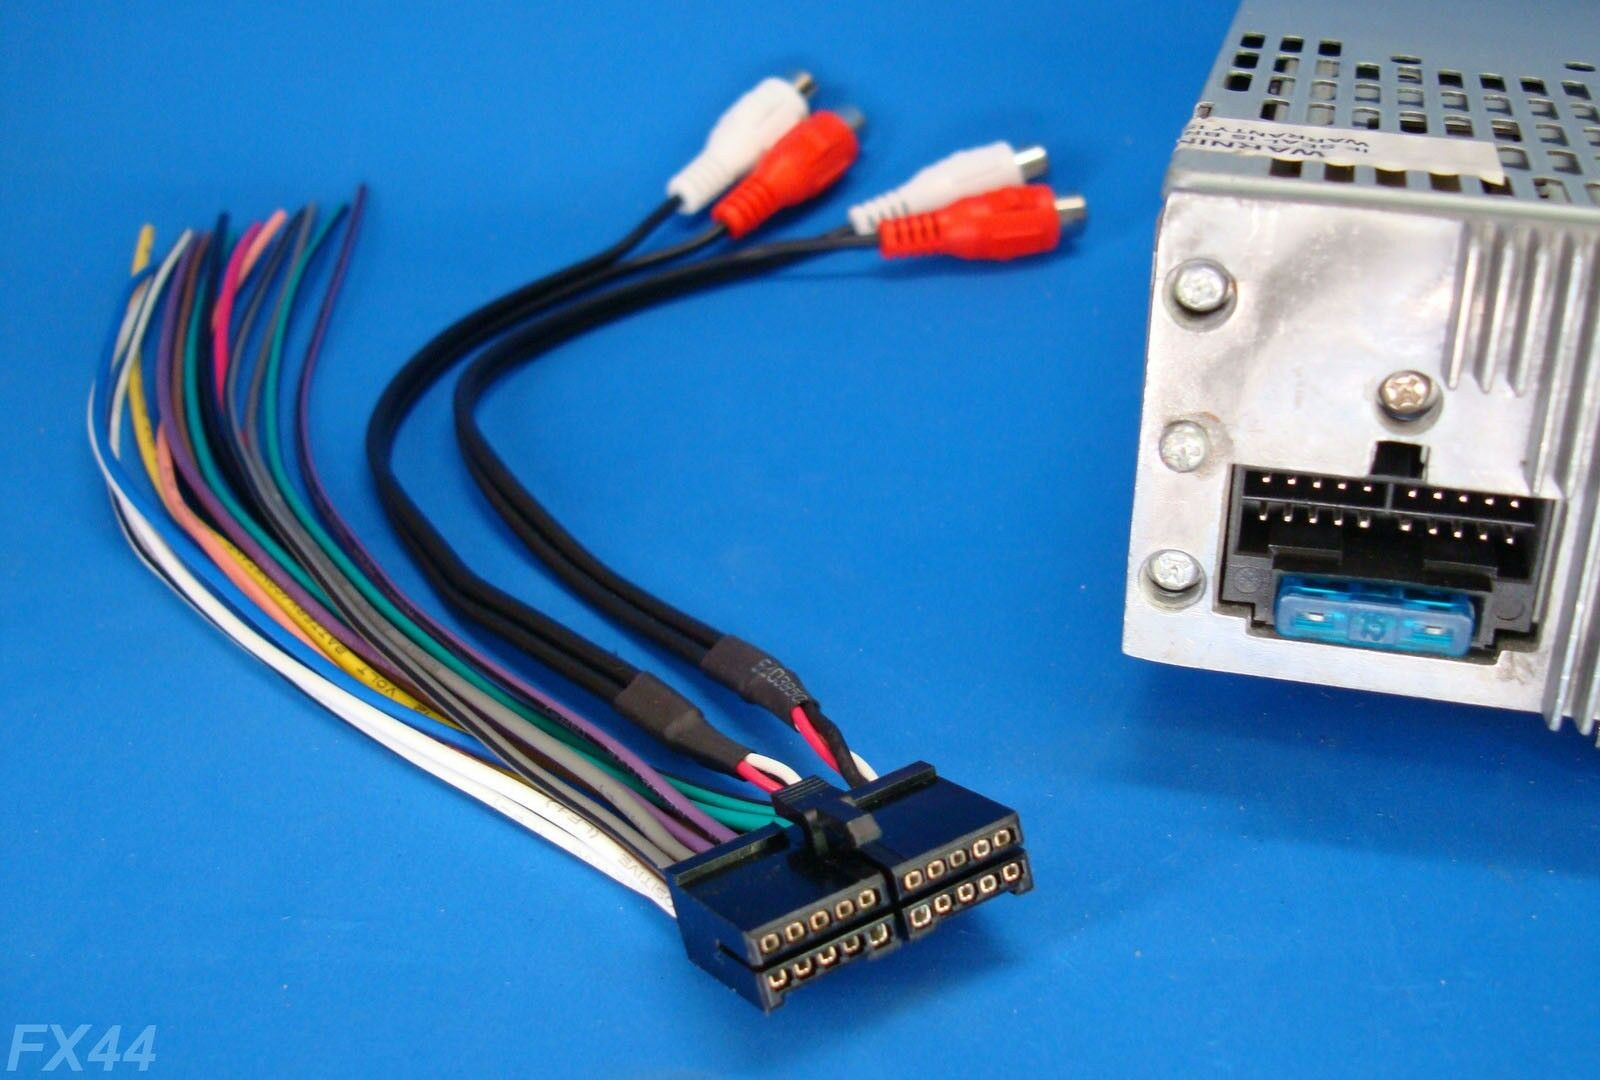 20 Pin Wire Harness Wiring Library Dvd Jensen Radio Stereo Power Plug Cd Player Unit Back Clip